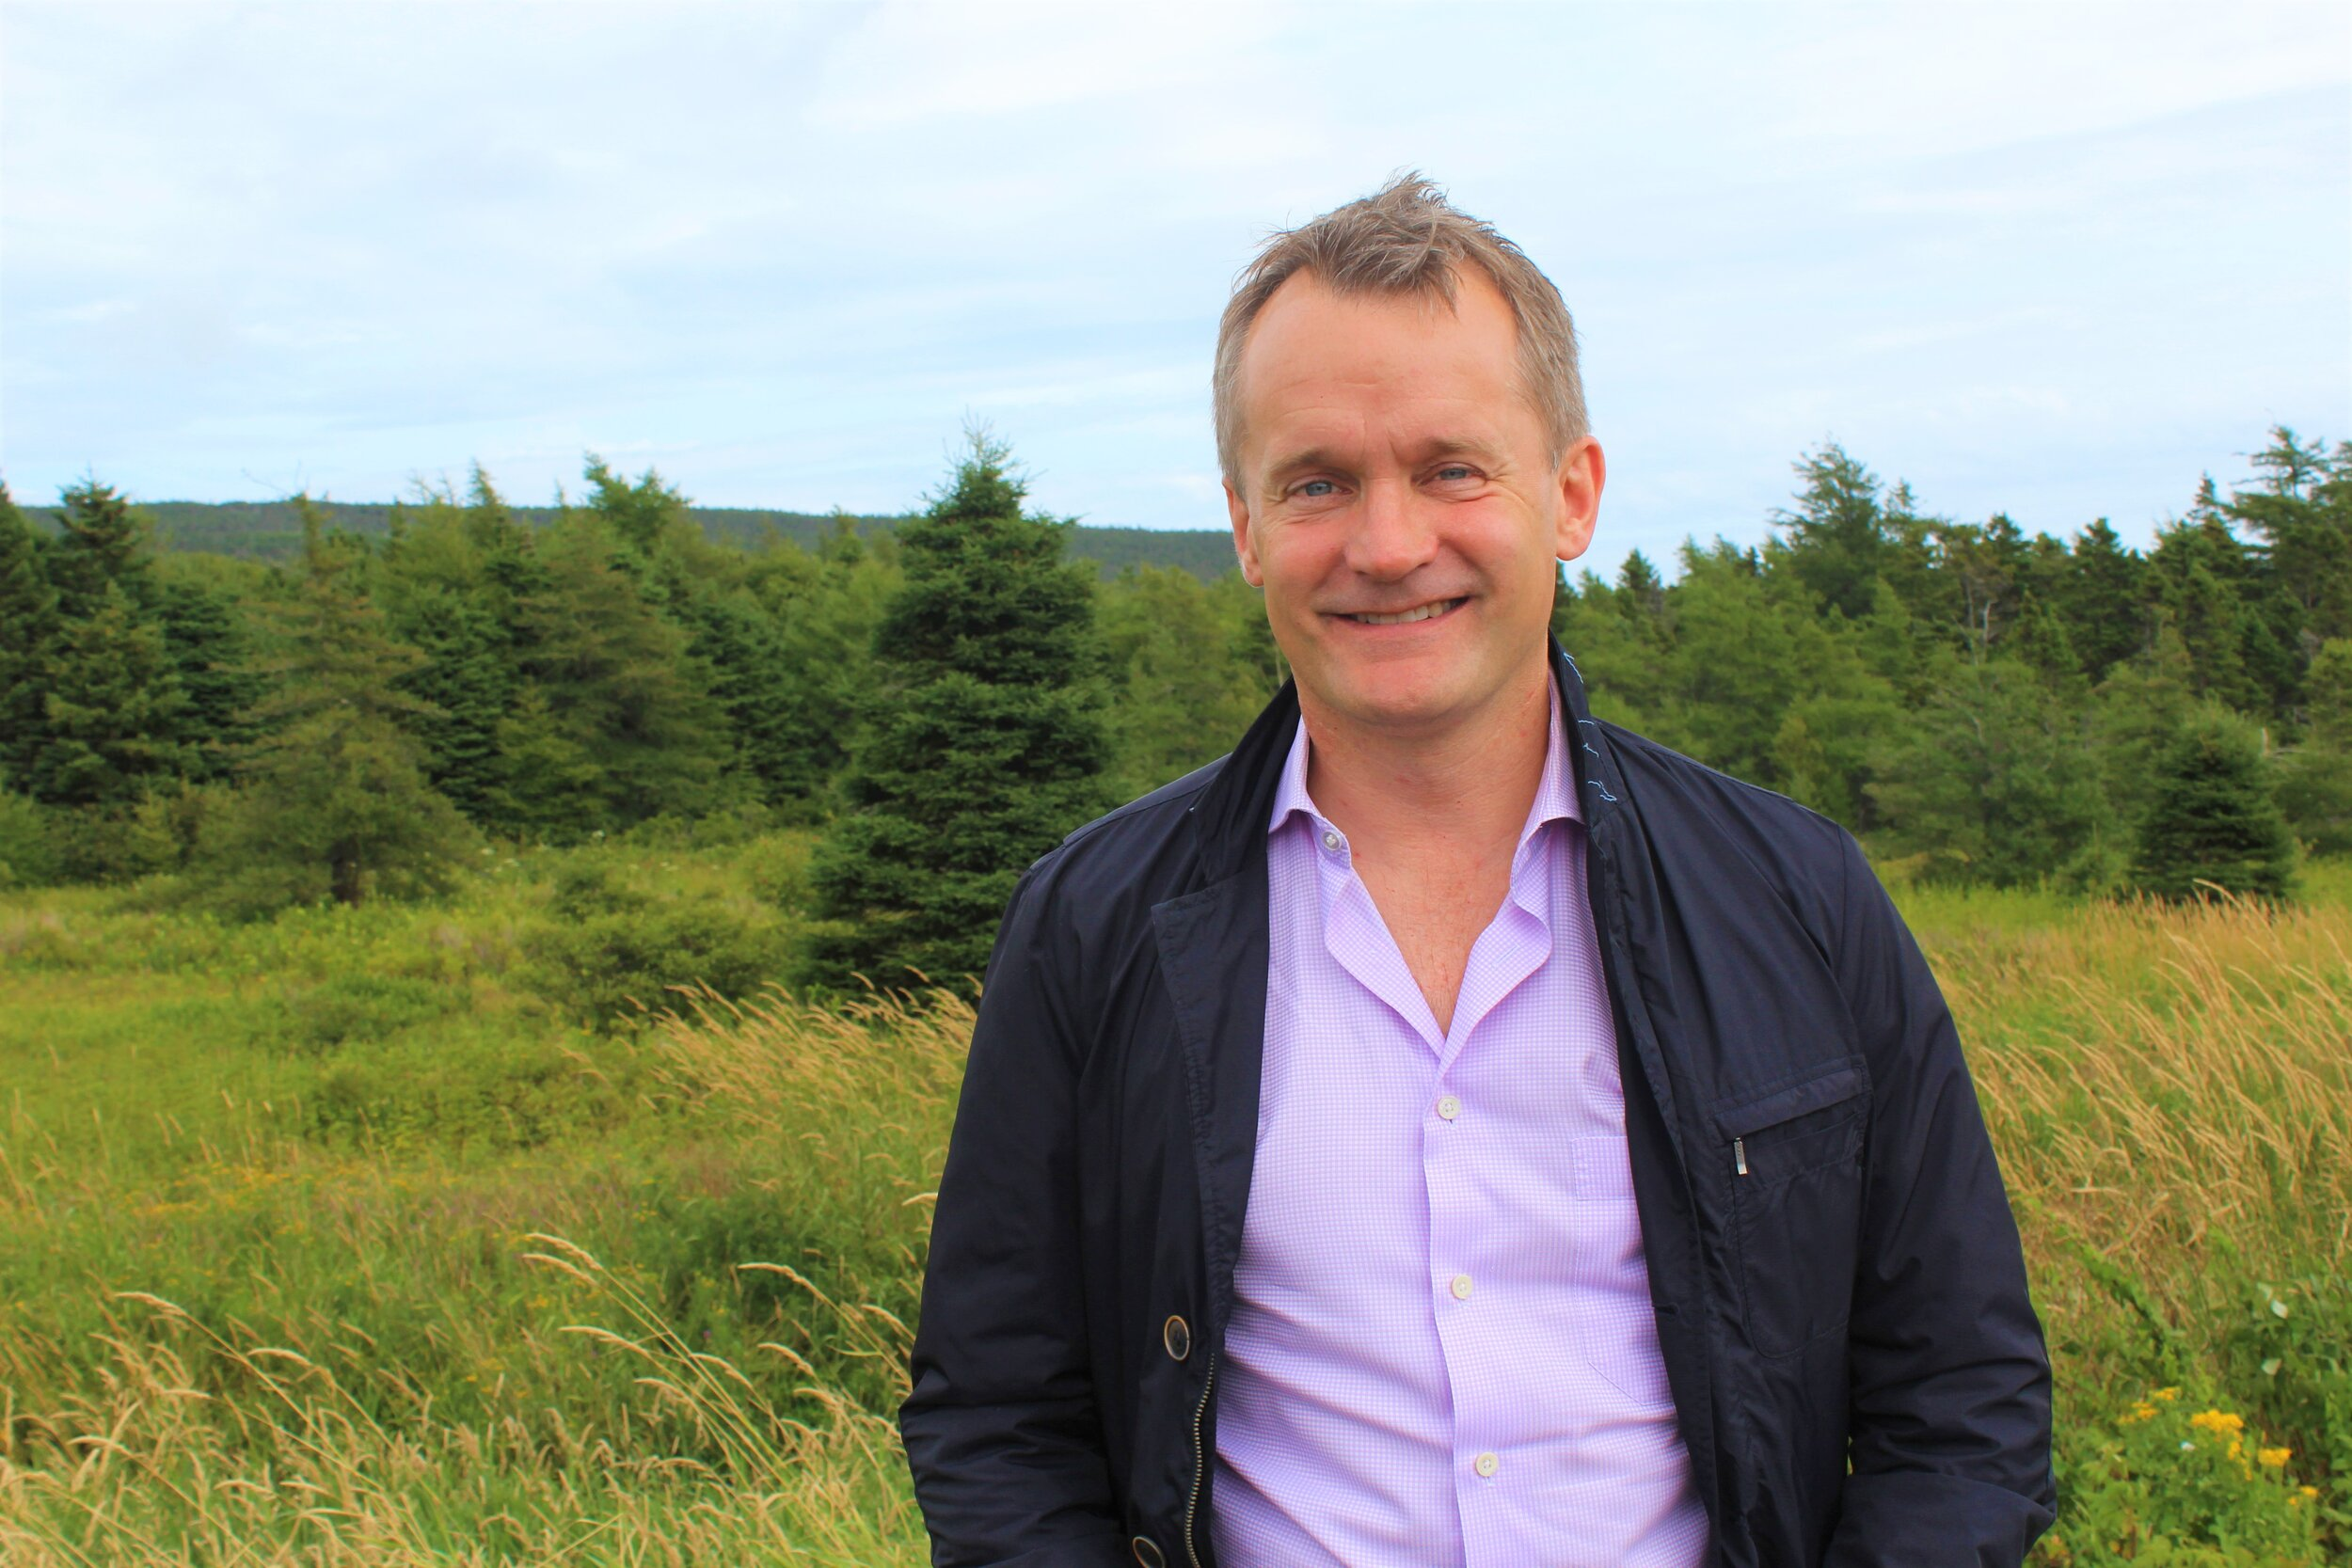 St. John's South – Mount Pearl MP Seamus O'Regan outside Keith's Diner in the Goulds following an interview with the Irish Loop Post. Chris Lewis photo